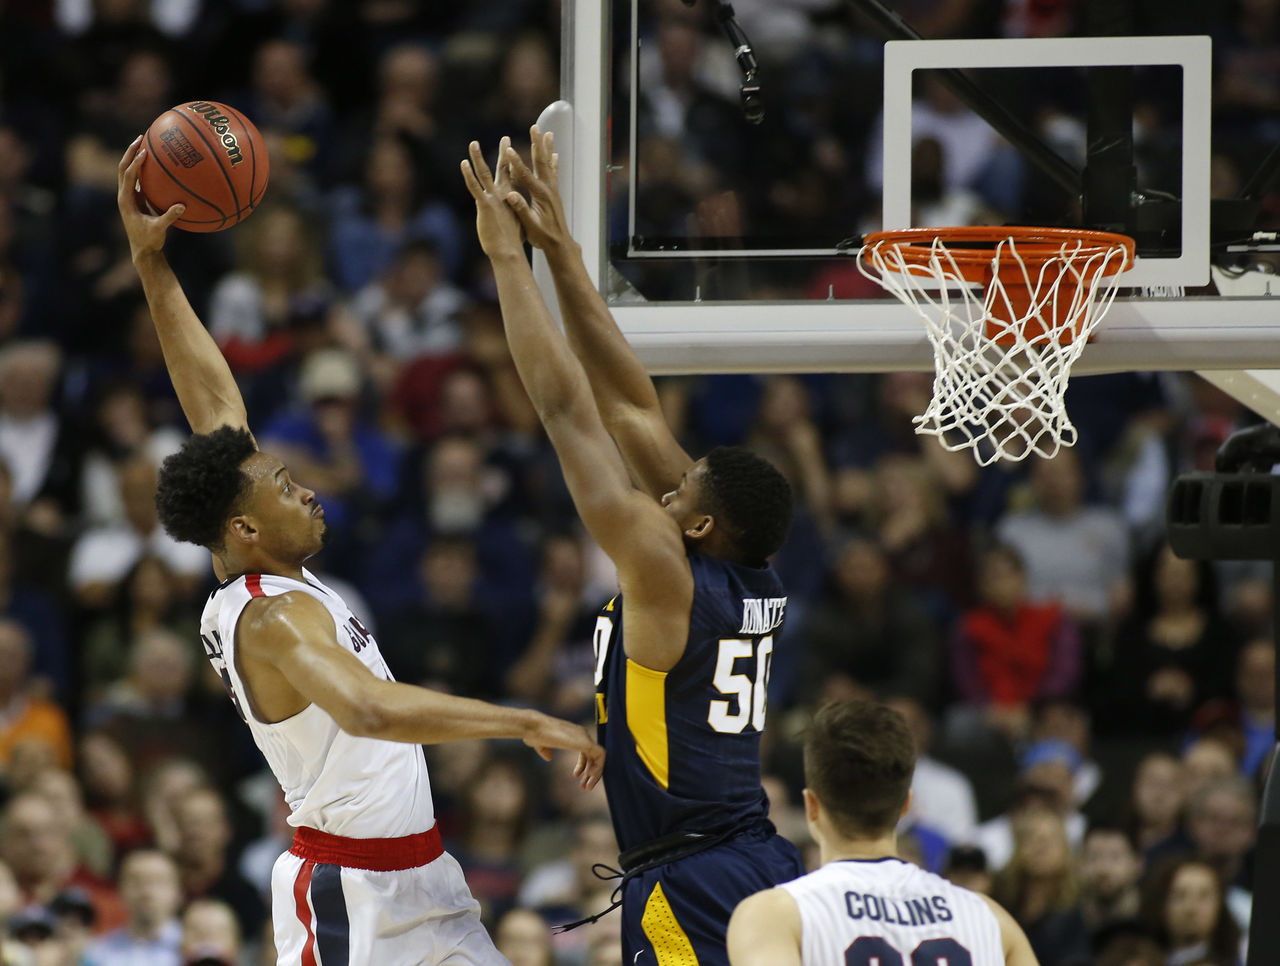 Cropped 2017 03 24t015044z 303007539 nocid rtrmadp 3 ncaa basketball ncaa tournament west regional gonzaga vs west virginia